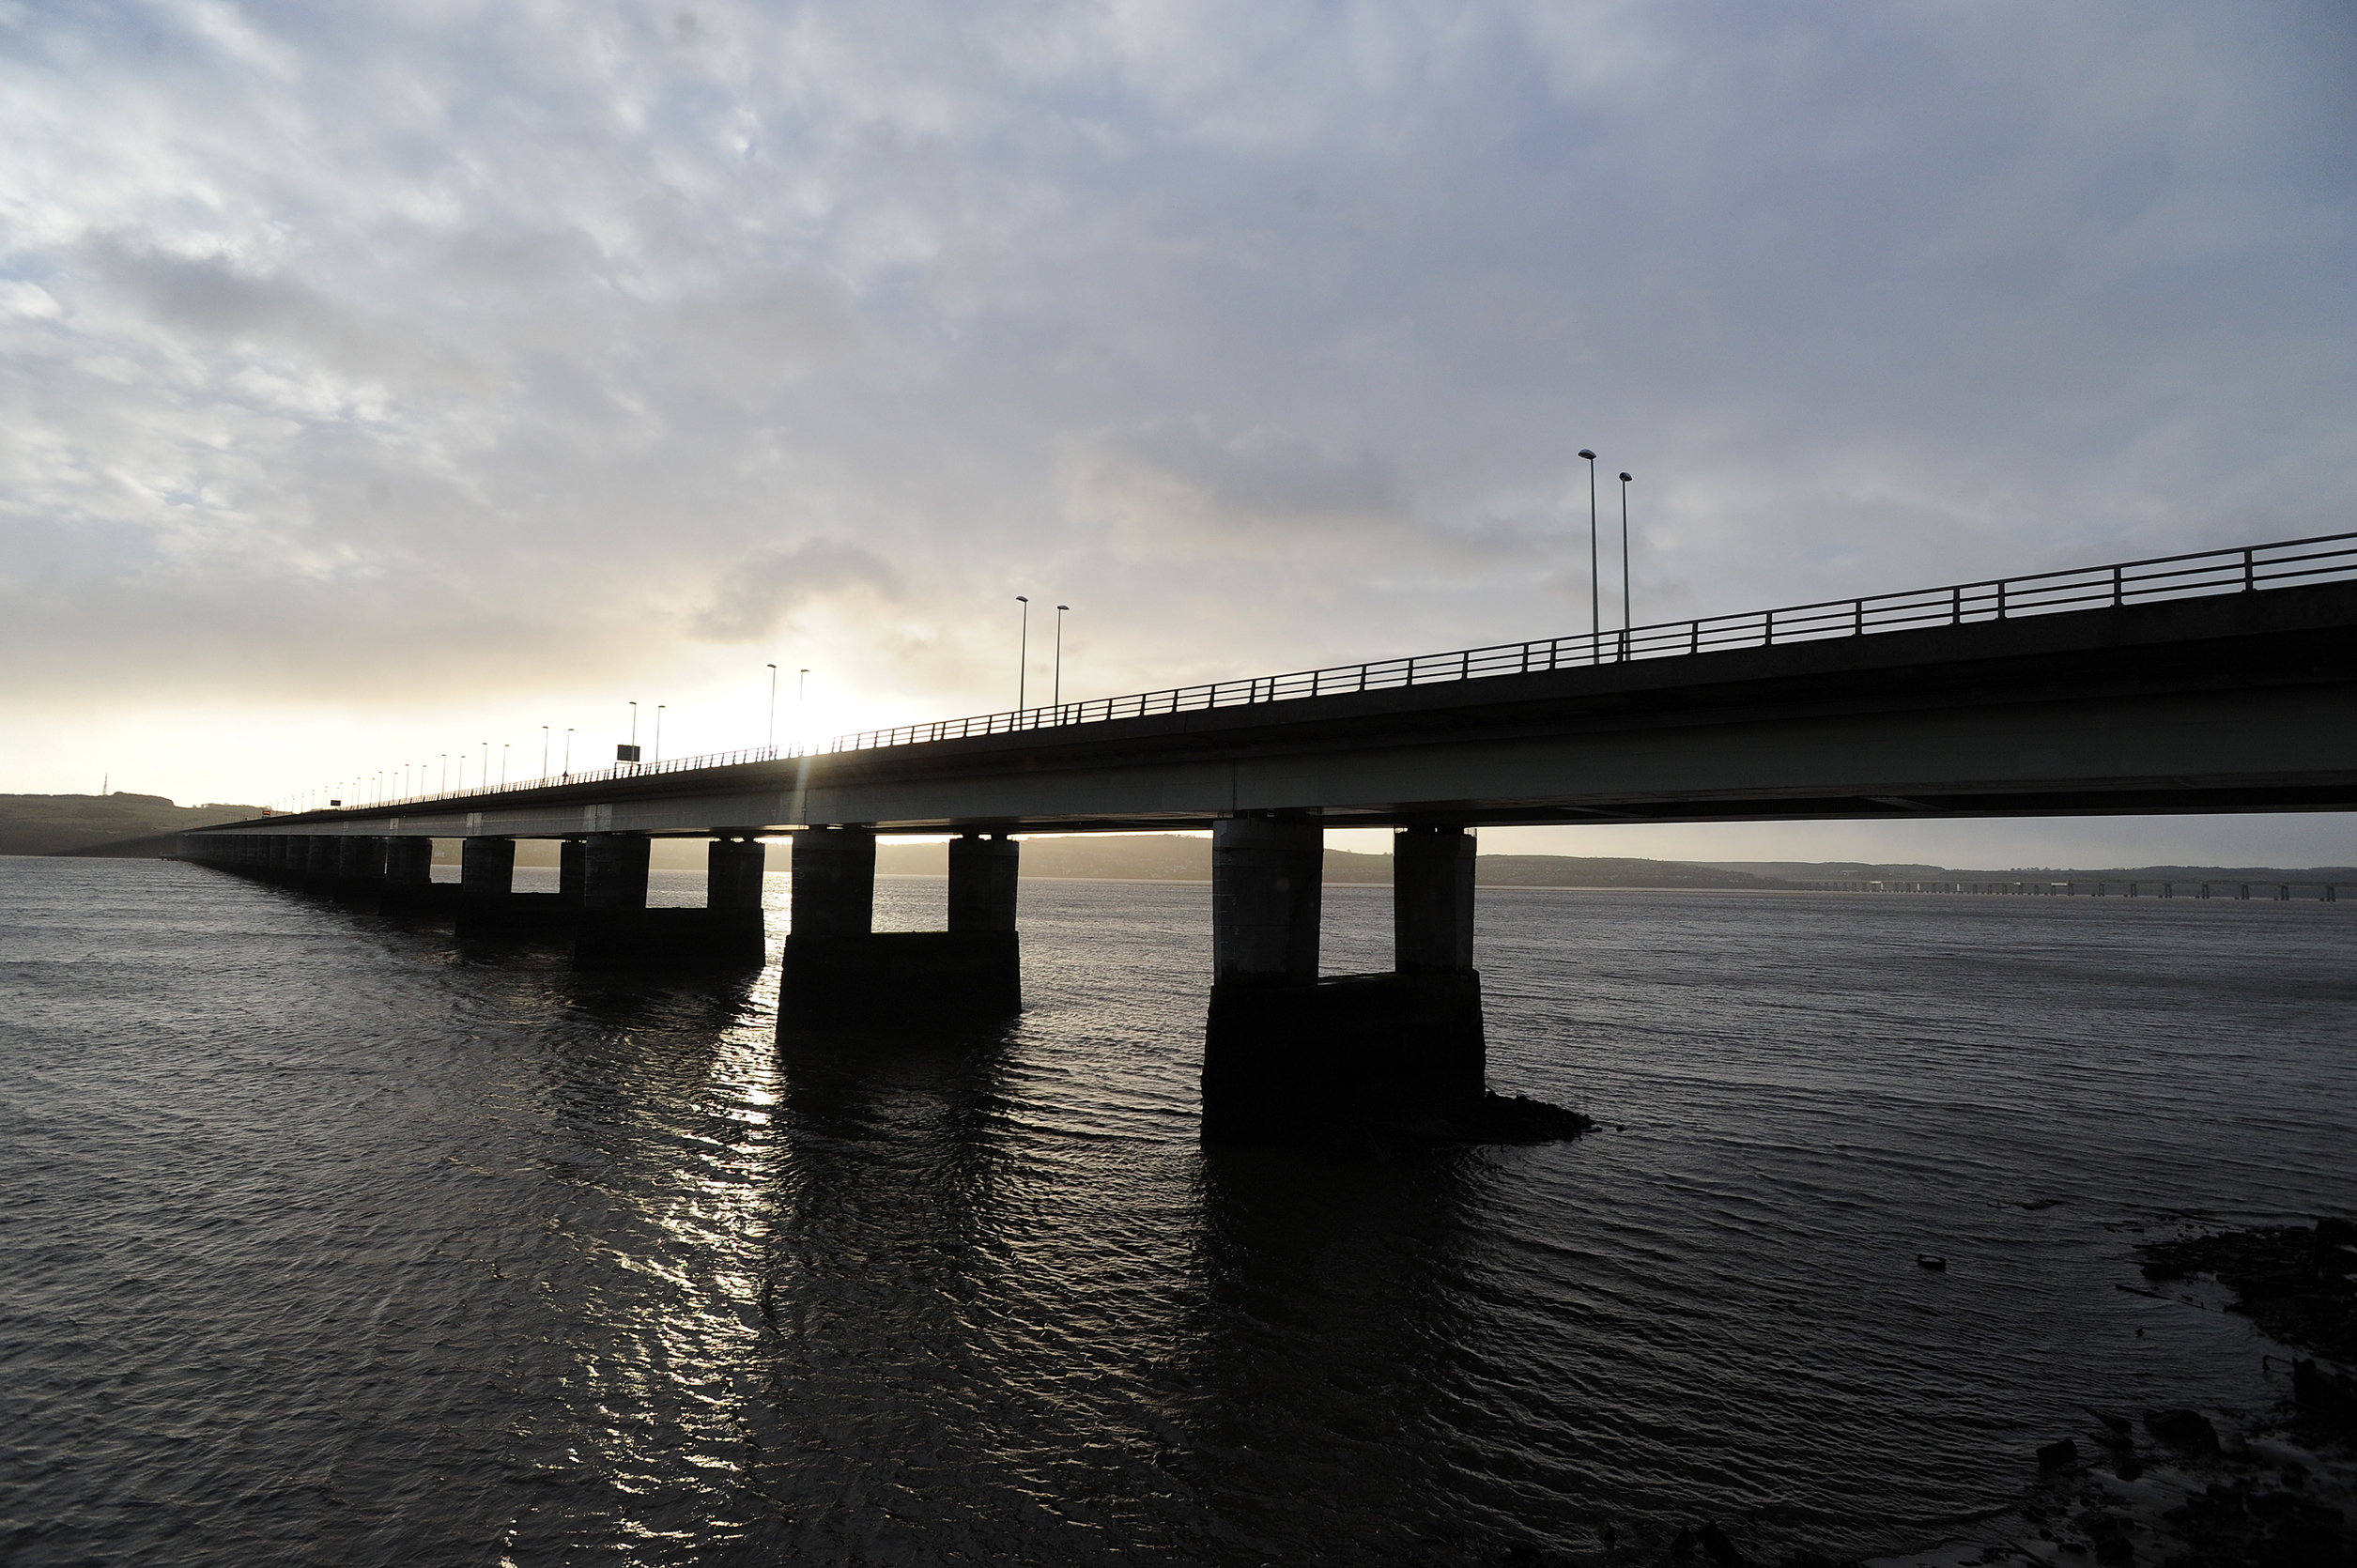 Kim Cessford - 05.12.13 - pictured is the deserted Tay Road Bridge which was closed due to the high winds